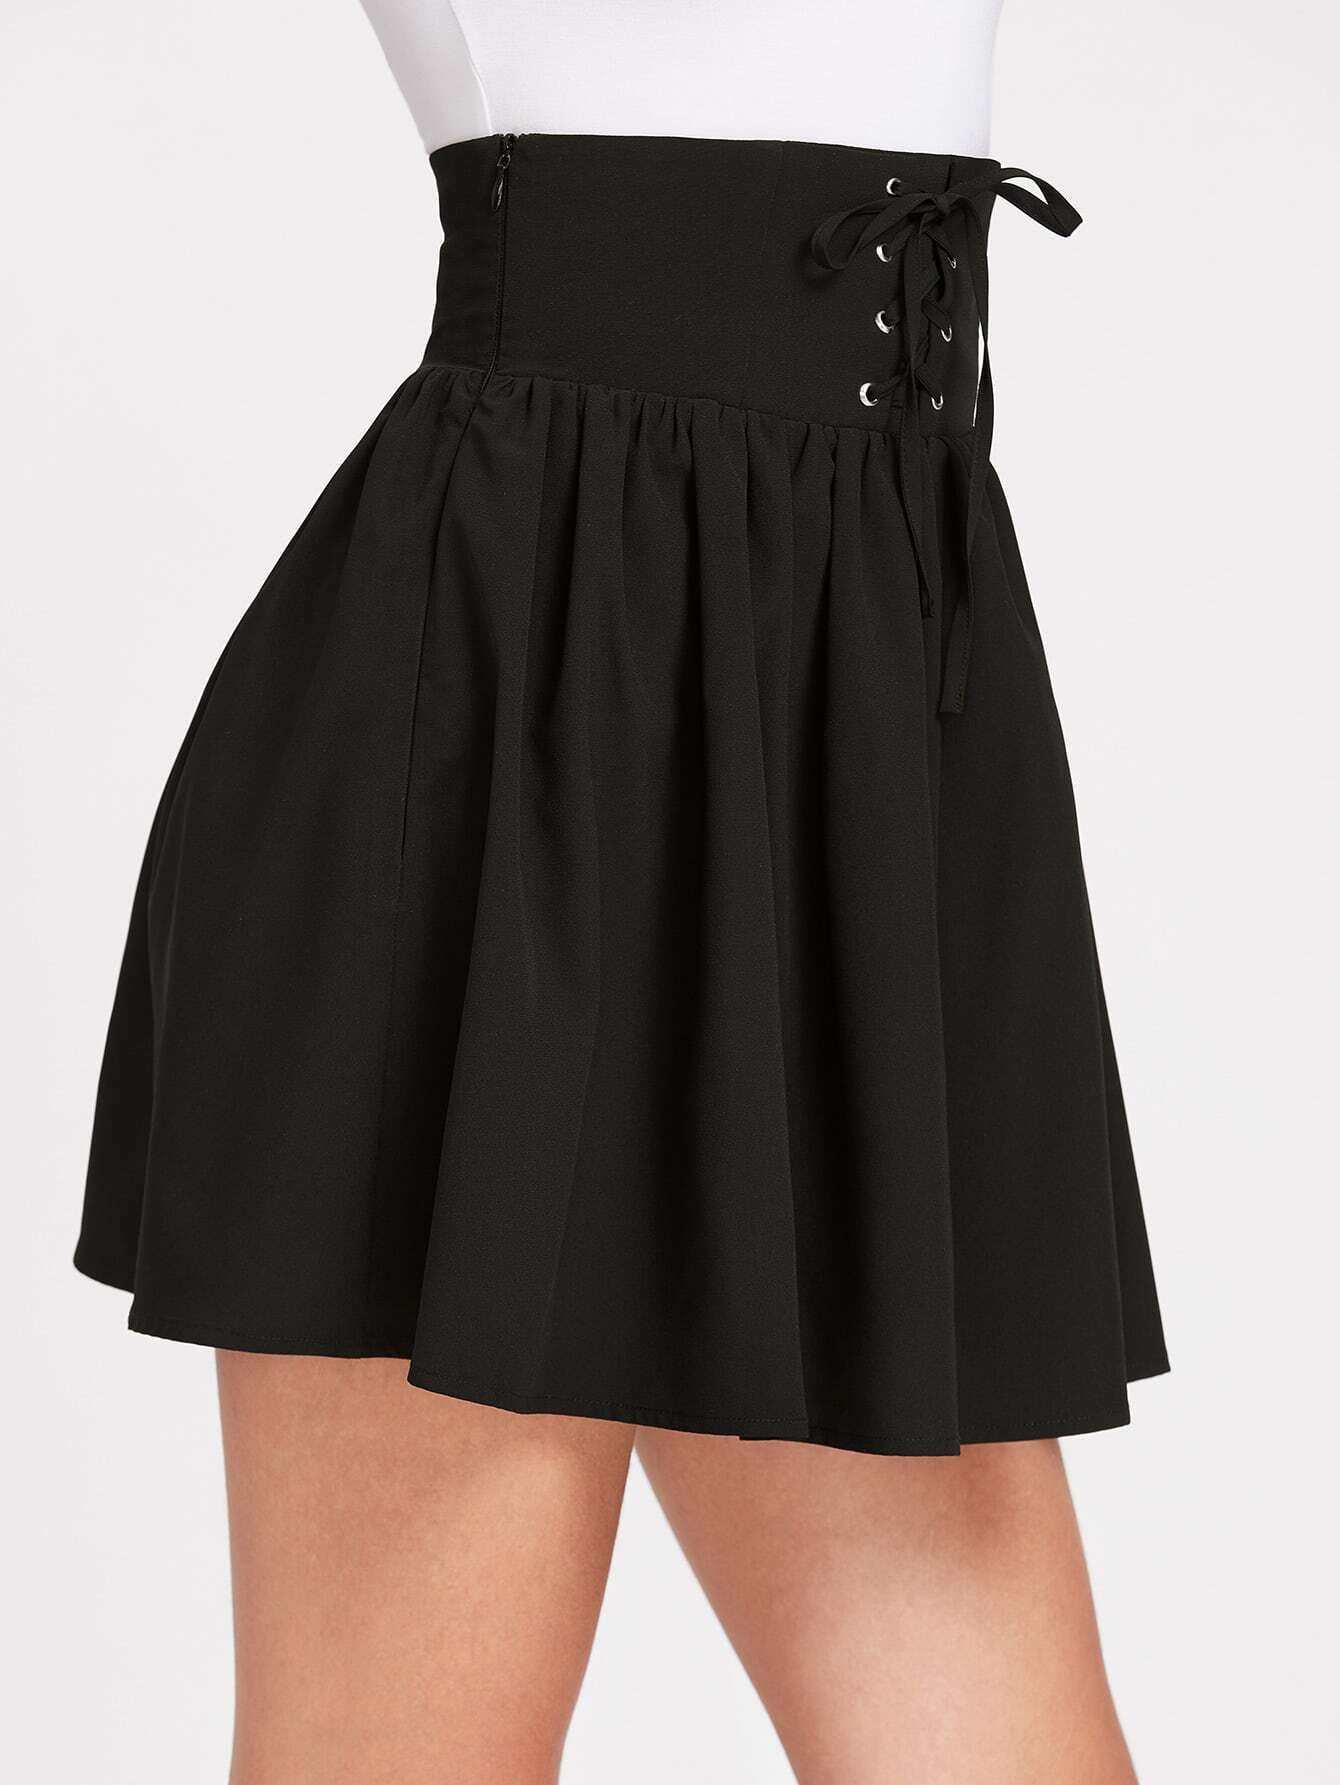 limpid in sight clear-cut texture good reputation Grommet Lace Up Corset Skirt